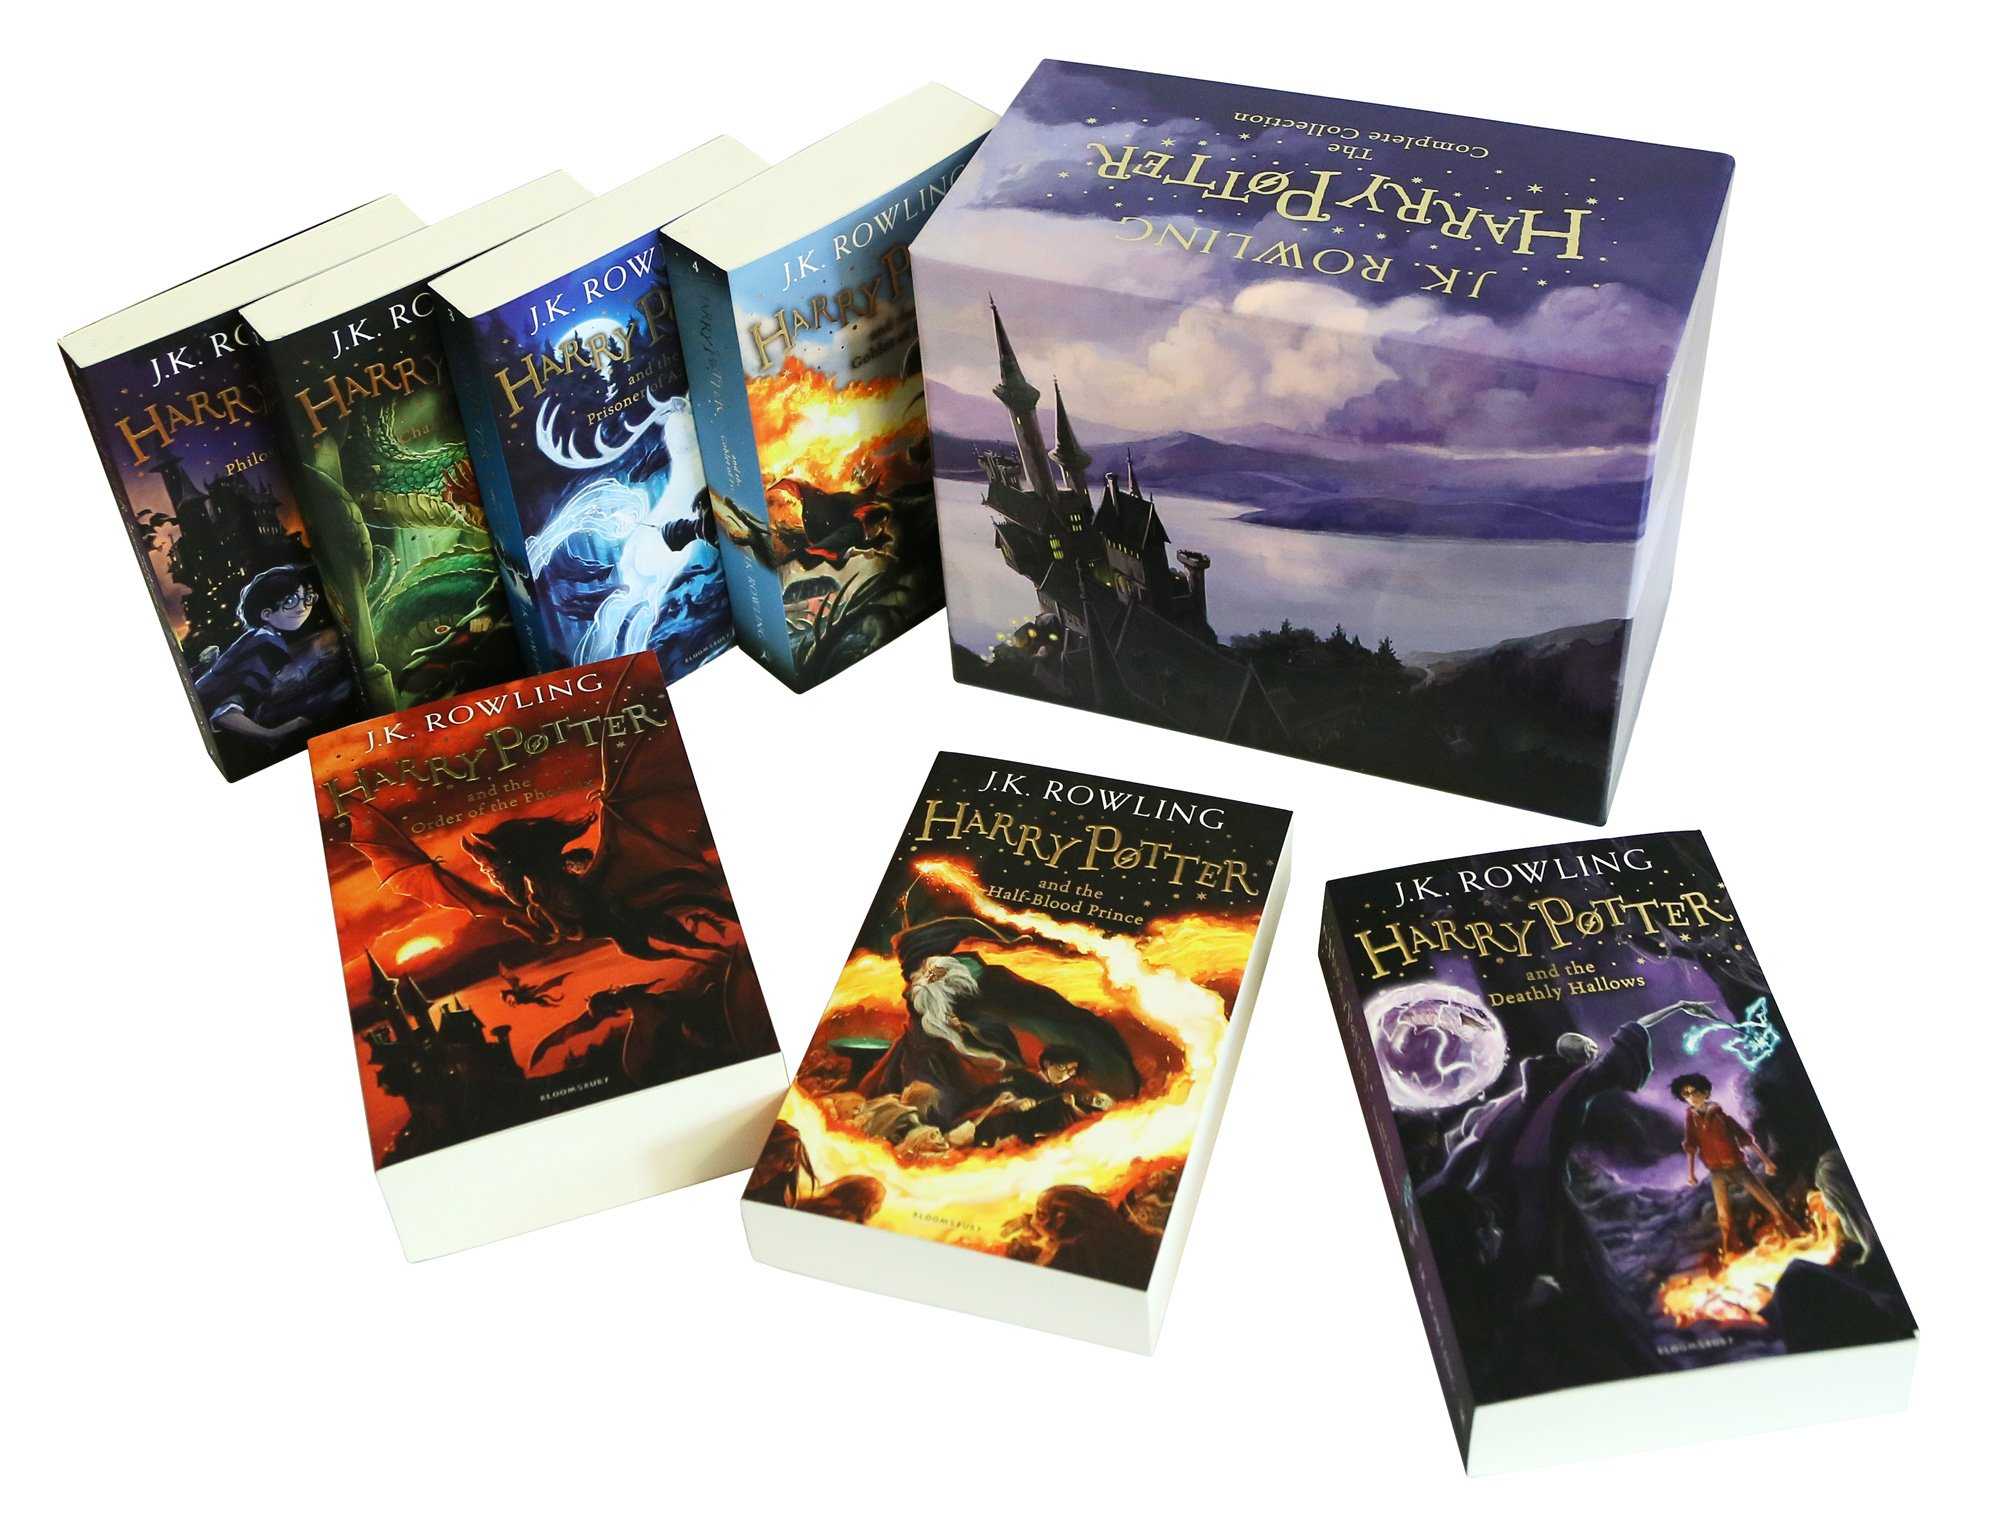 Coleccion Completa De Libros De Harry Potter En Español 13 Things About Harry Potter You Wouldnt Know Without